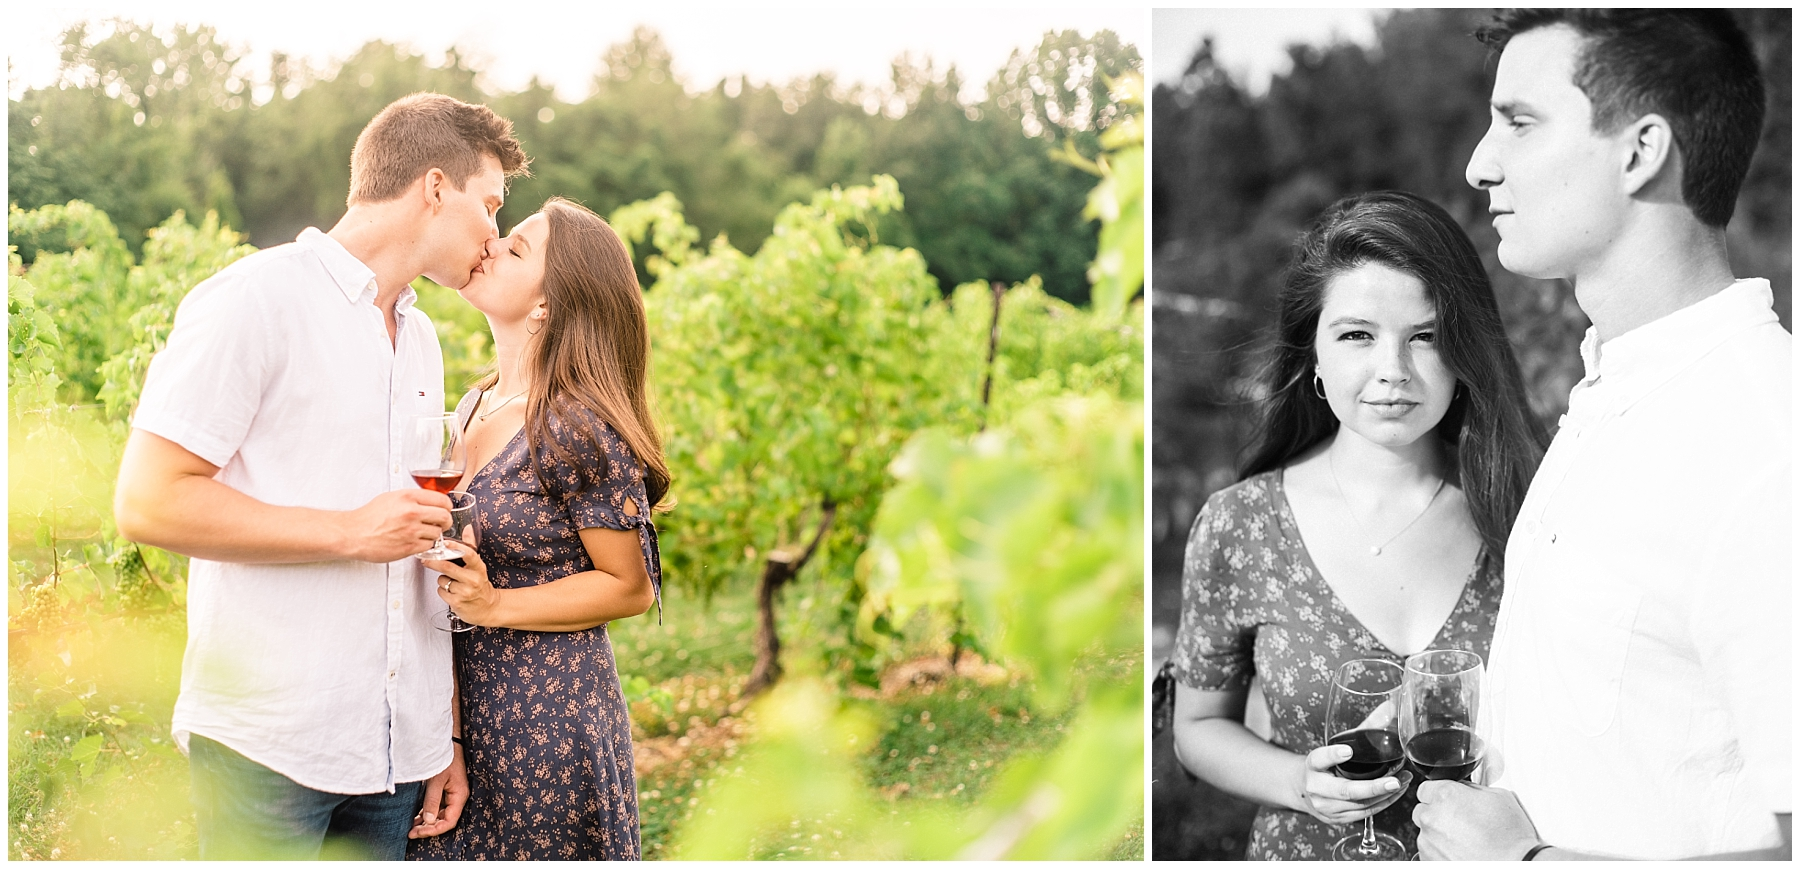 lafayette indiana engagement photography lake michigan vineyard winery wedding photographer elopement destination wedding (15).jpg